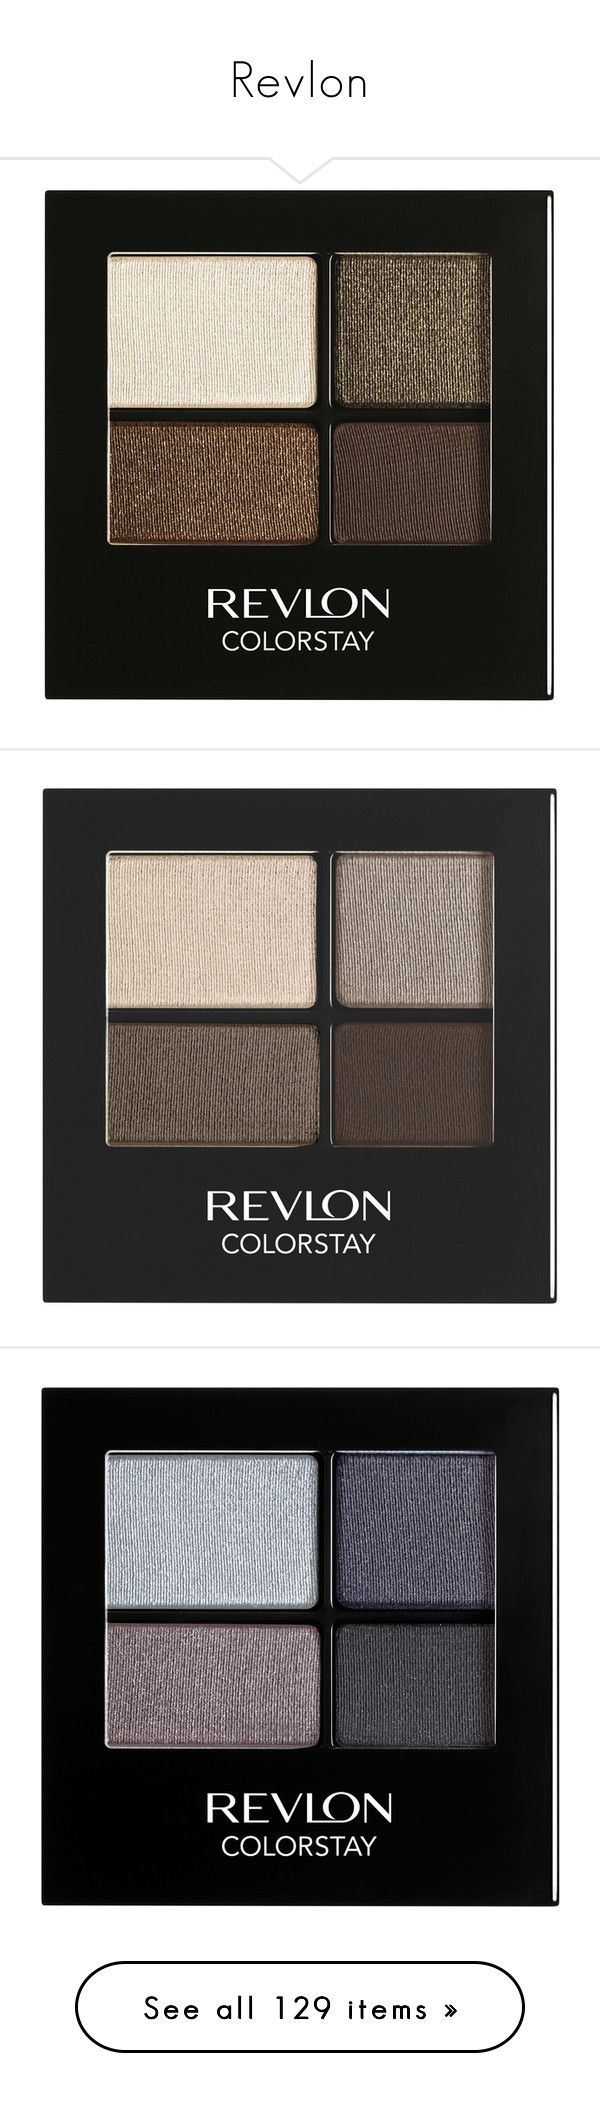 """""""Revlon"""" by shoppings9 ❤ liked on Polyvore featuring beauty products, makeup, eye makeup, eyeshadow, revlon eyeshadow, revlon, revlon eye shadow, revlon eye makeup, eye brow makeup and siren"""